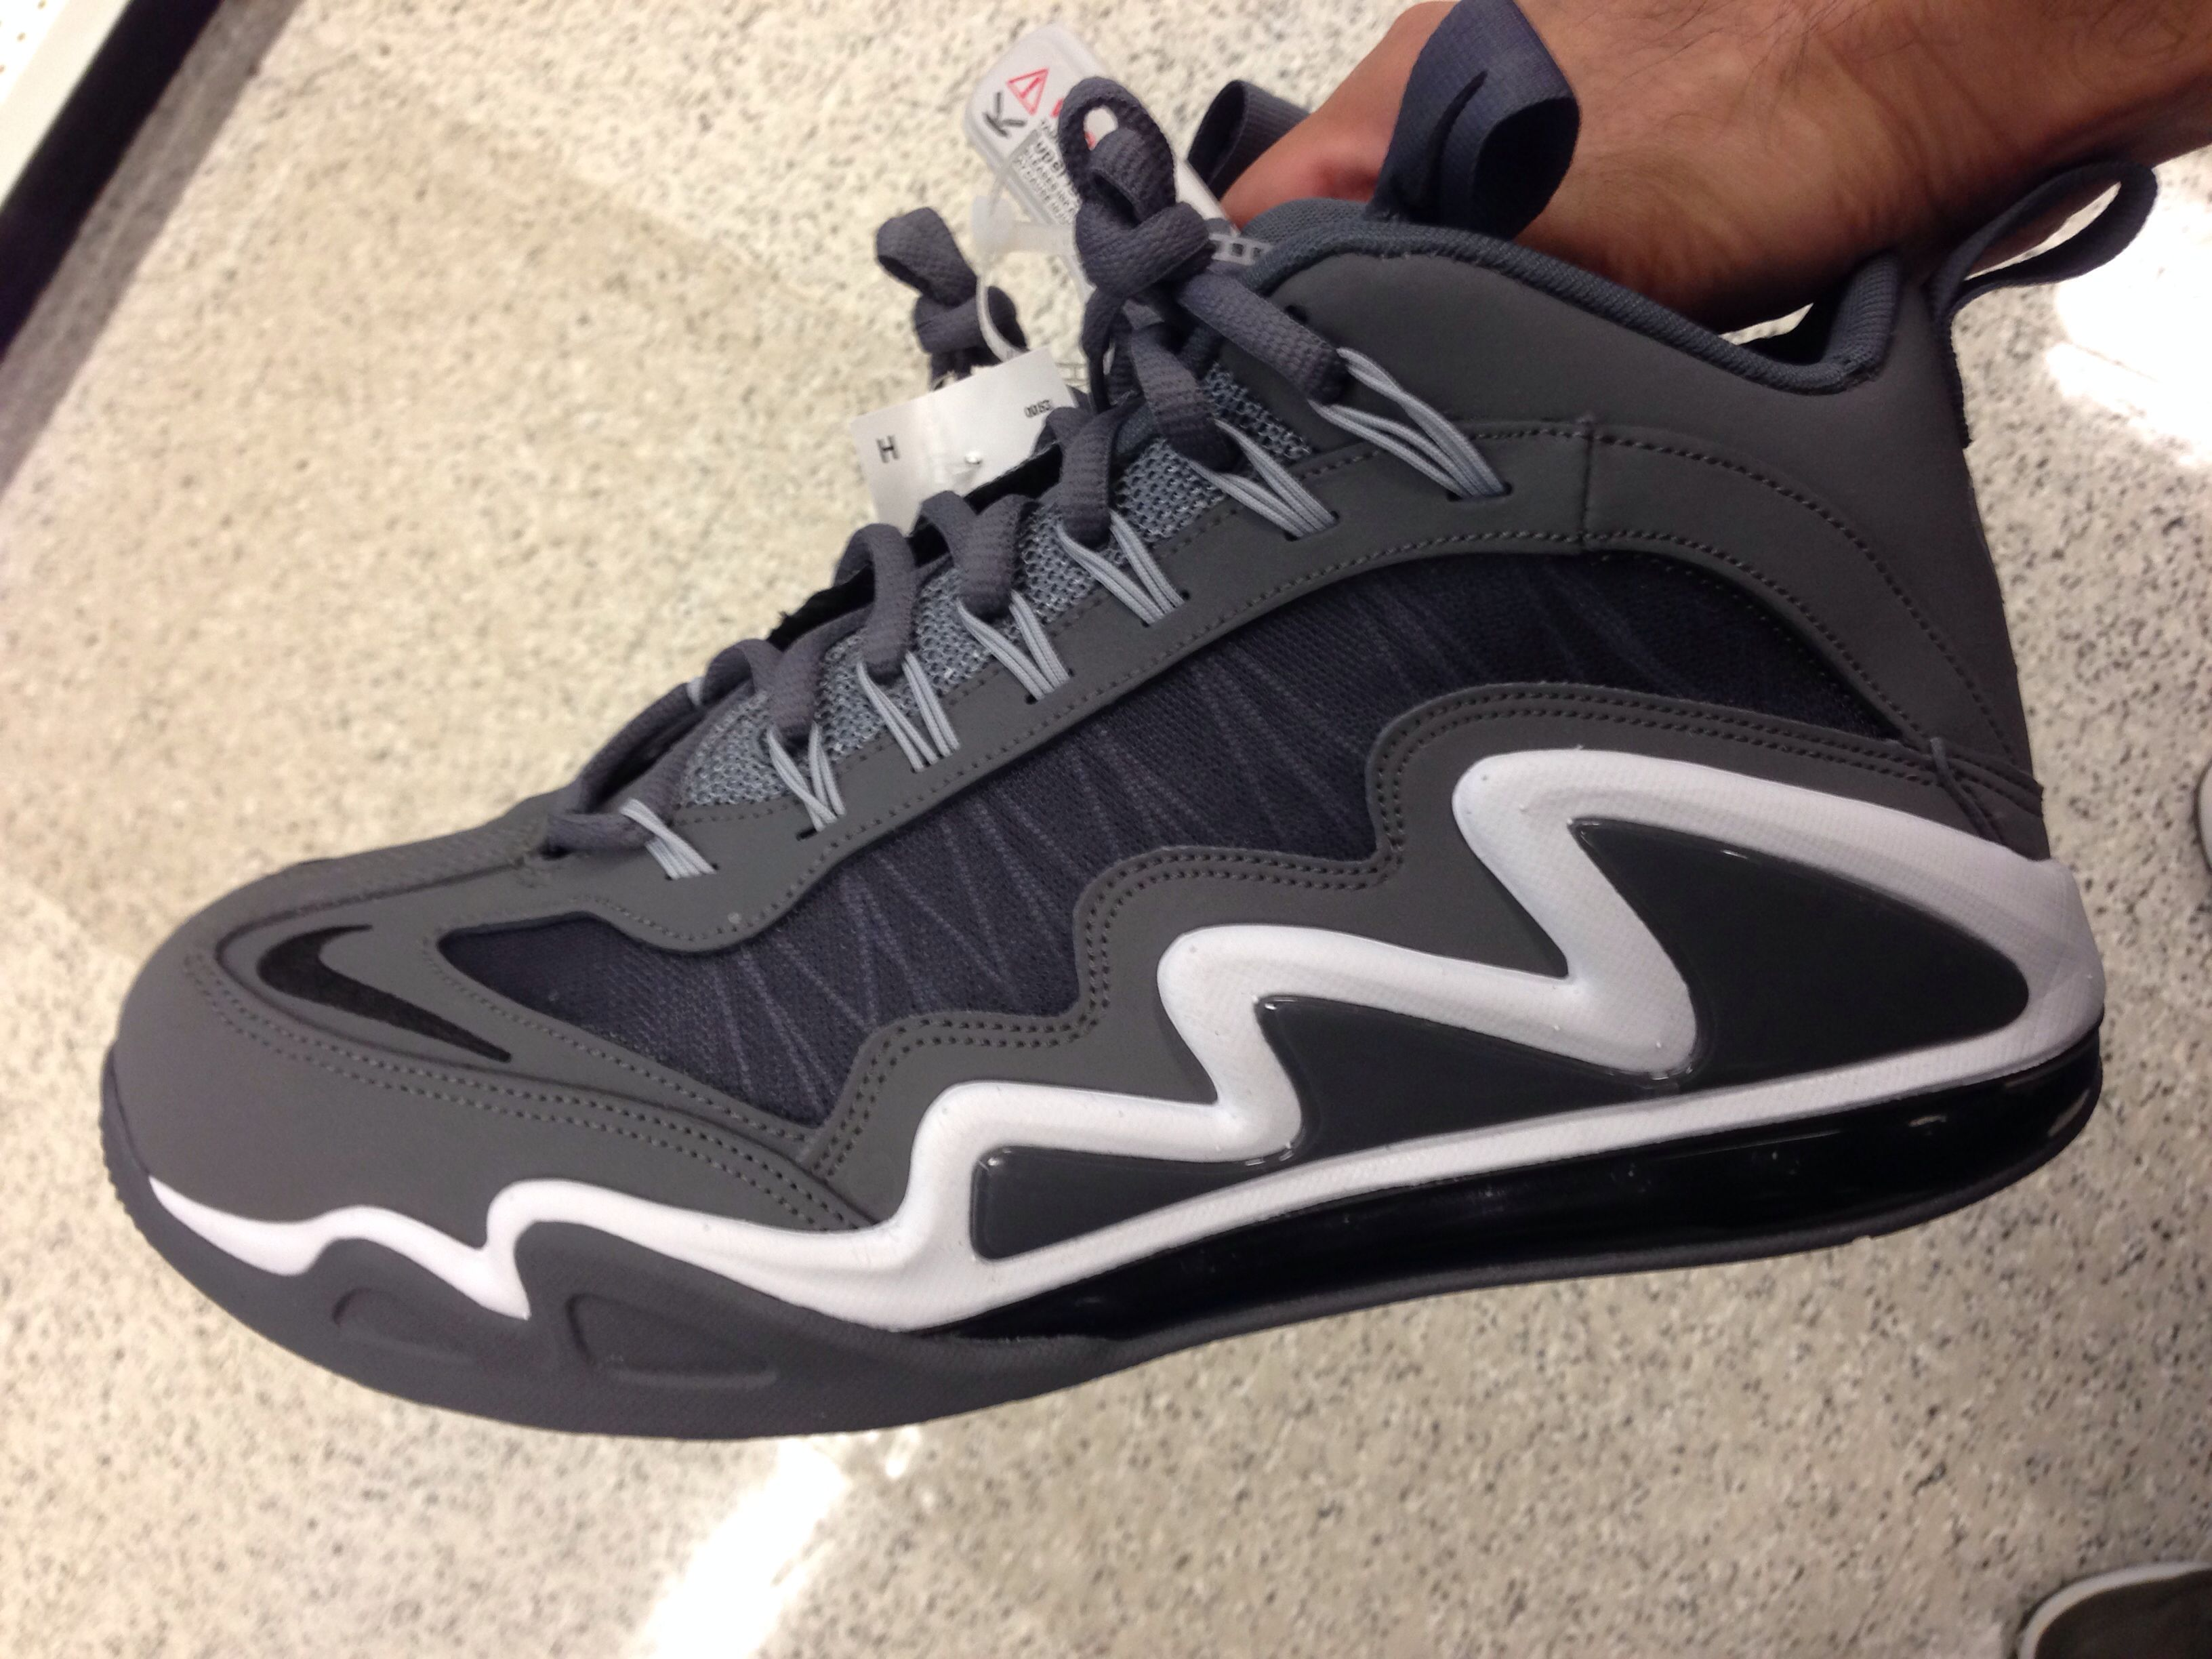 best service a69fe 10723 Nike Air Max 360 Griffey Hybrid found at Ross